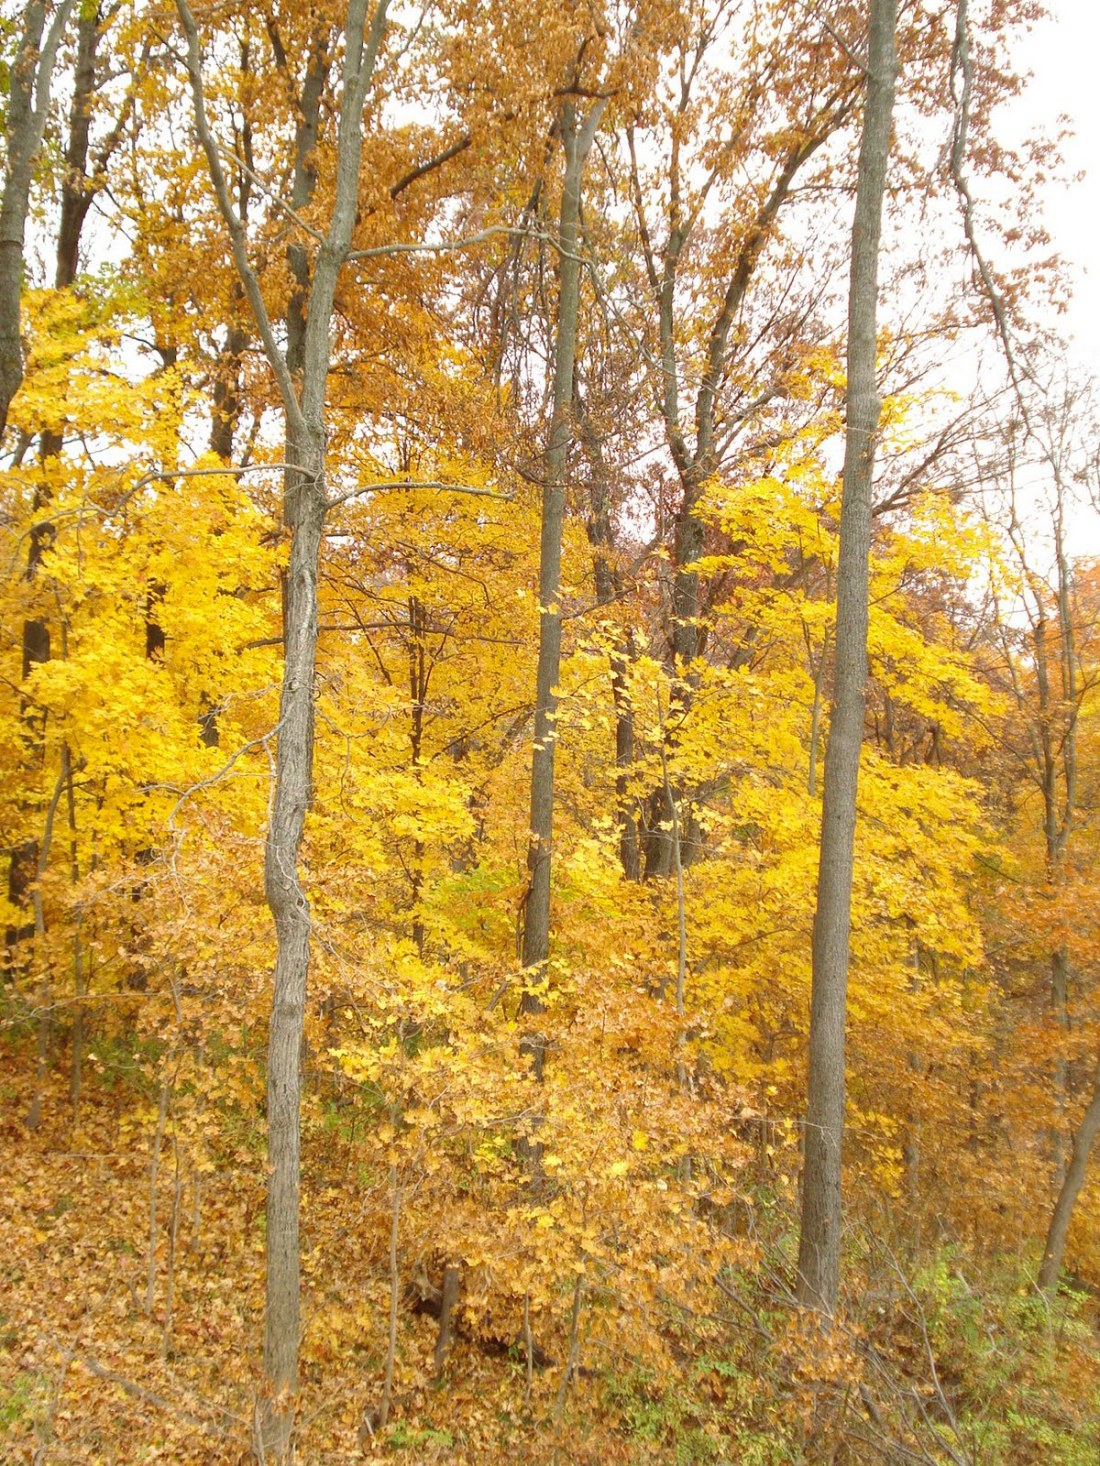 I love the simple majesty of the leaves as they begin to change color and texture.